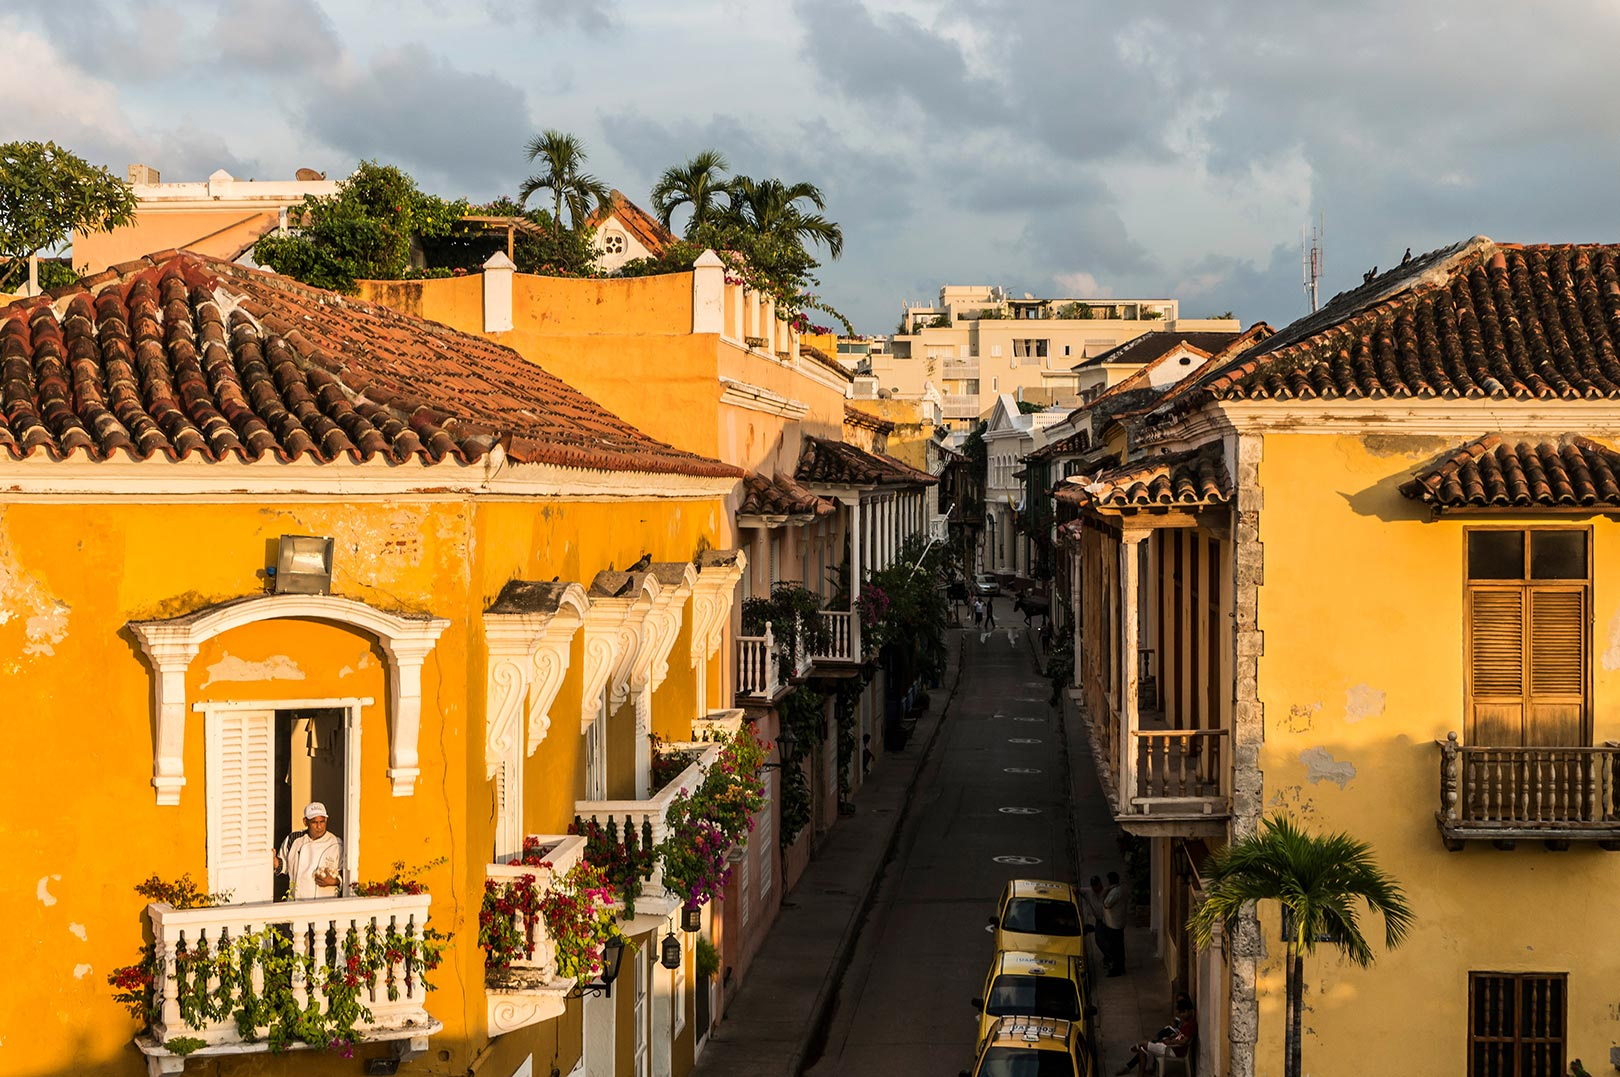 Picture of colonial buildings at sunset in old town Cartagena, Colombia